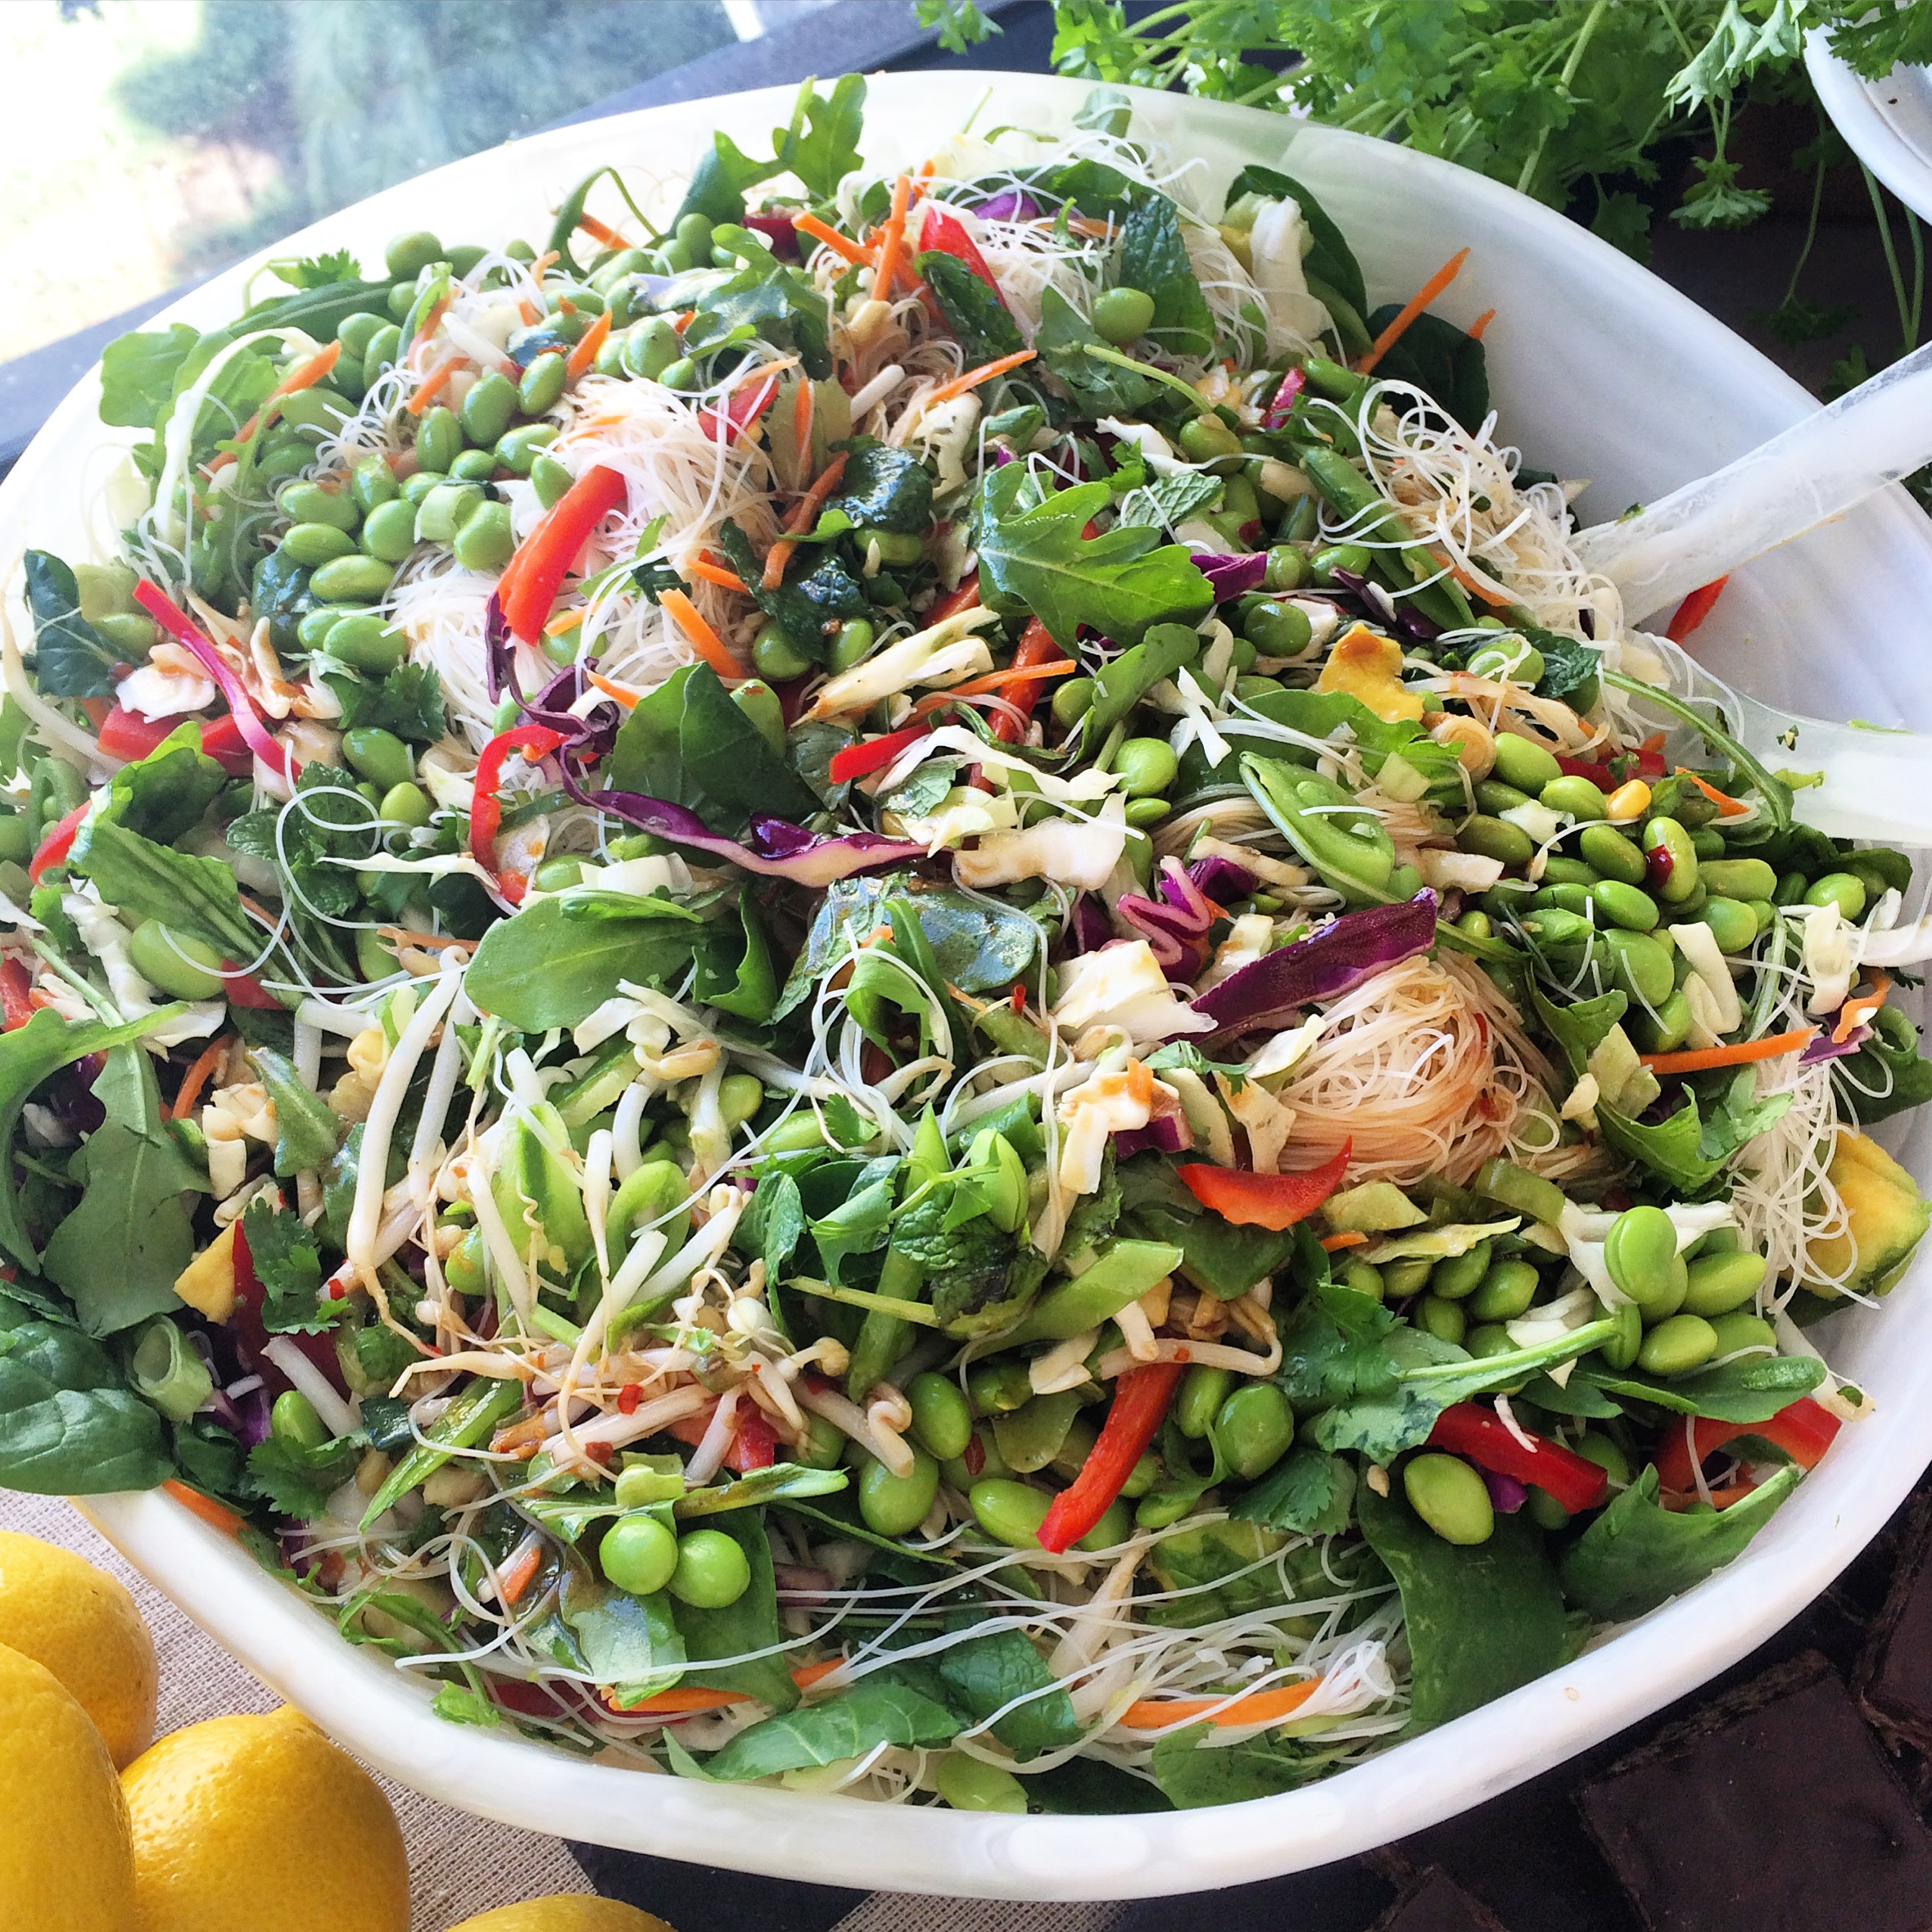 I made this salad for a special occasion so I doubled the recipe - thus the massive bowl.